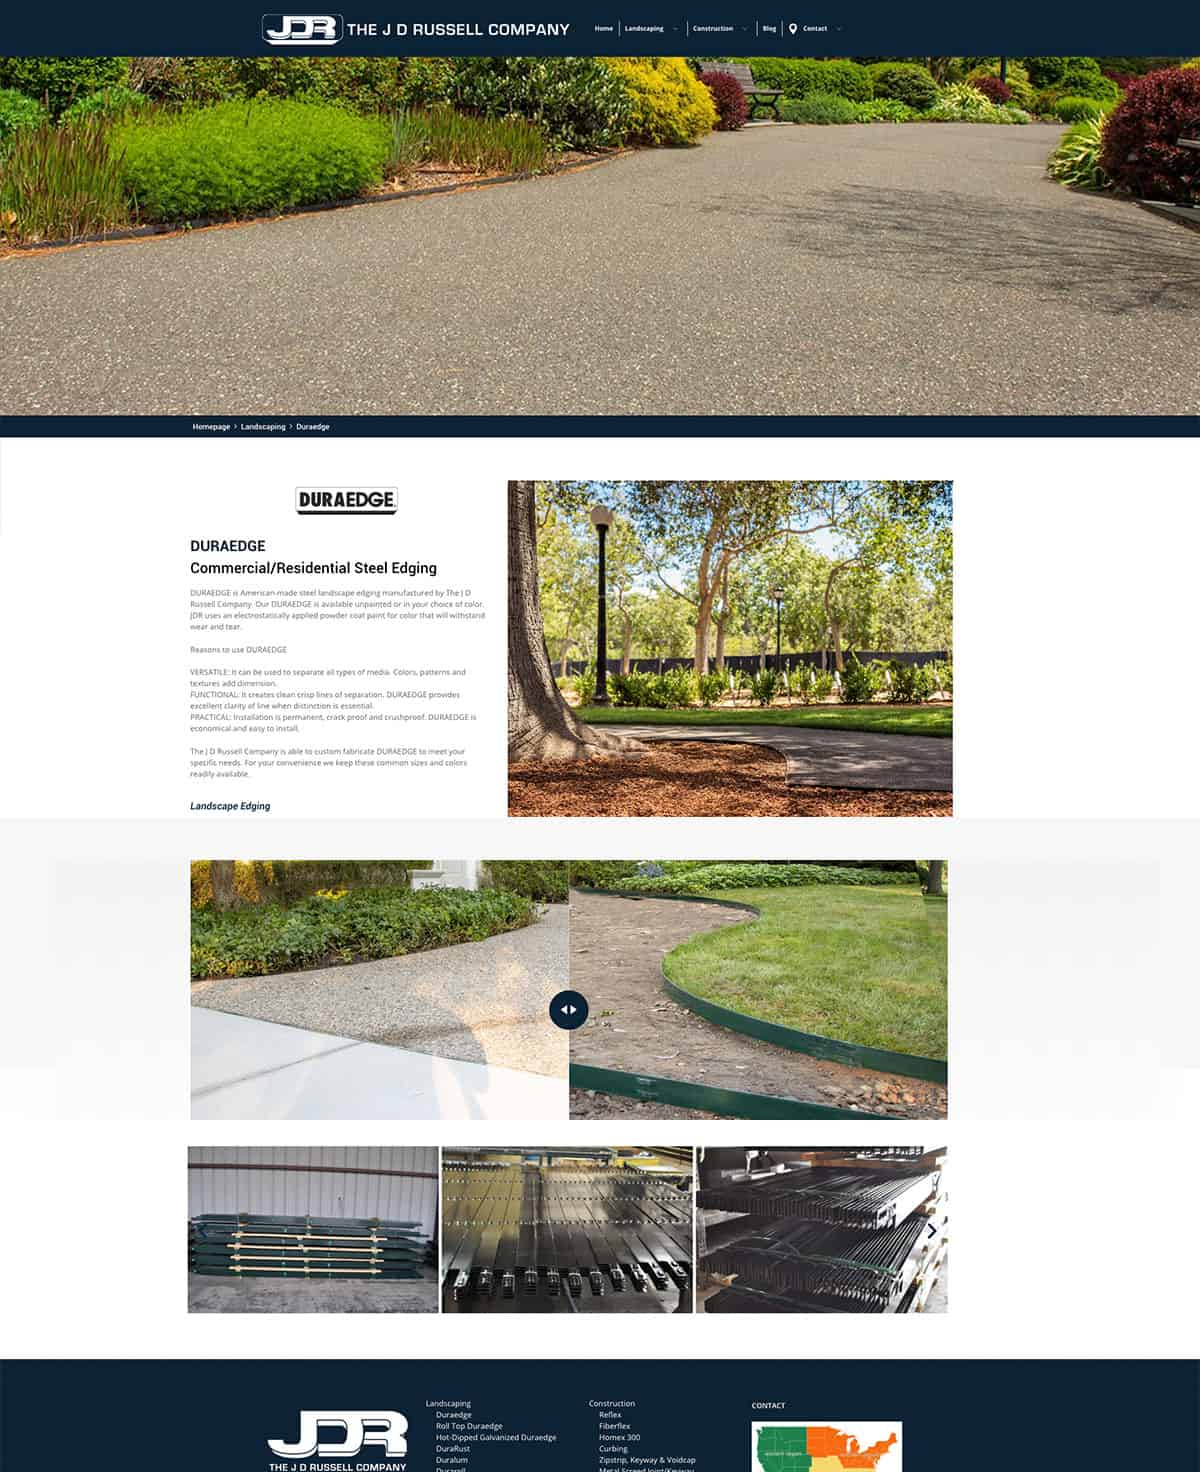 J.D. Russell Company Product Page